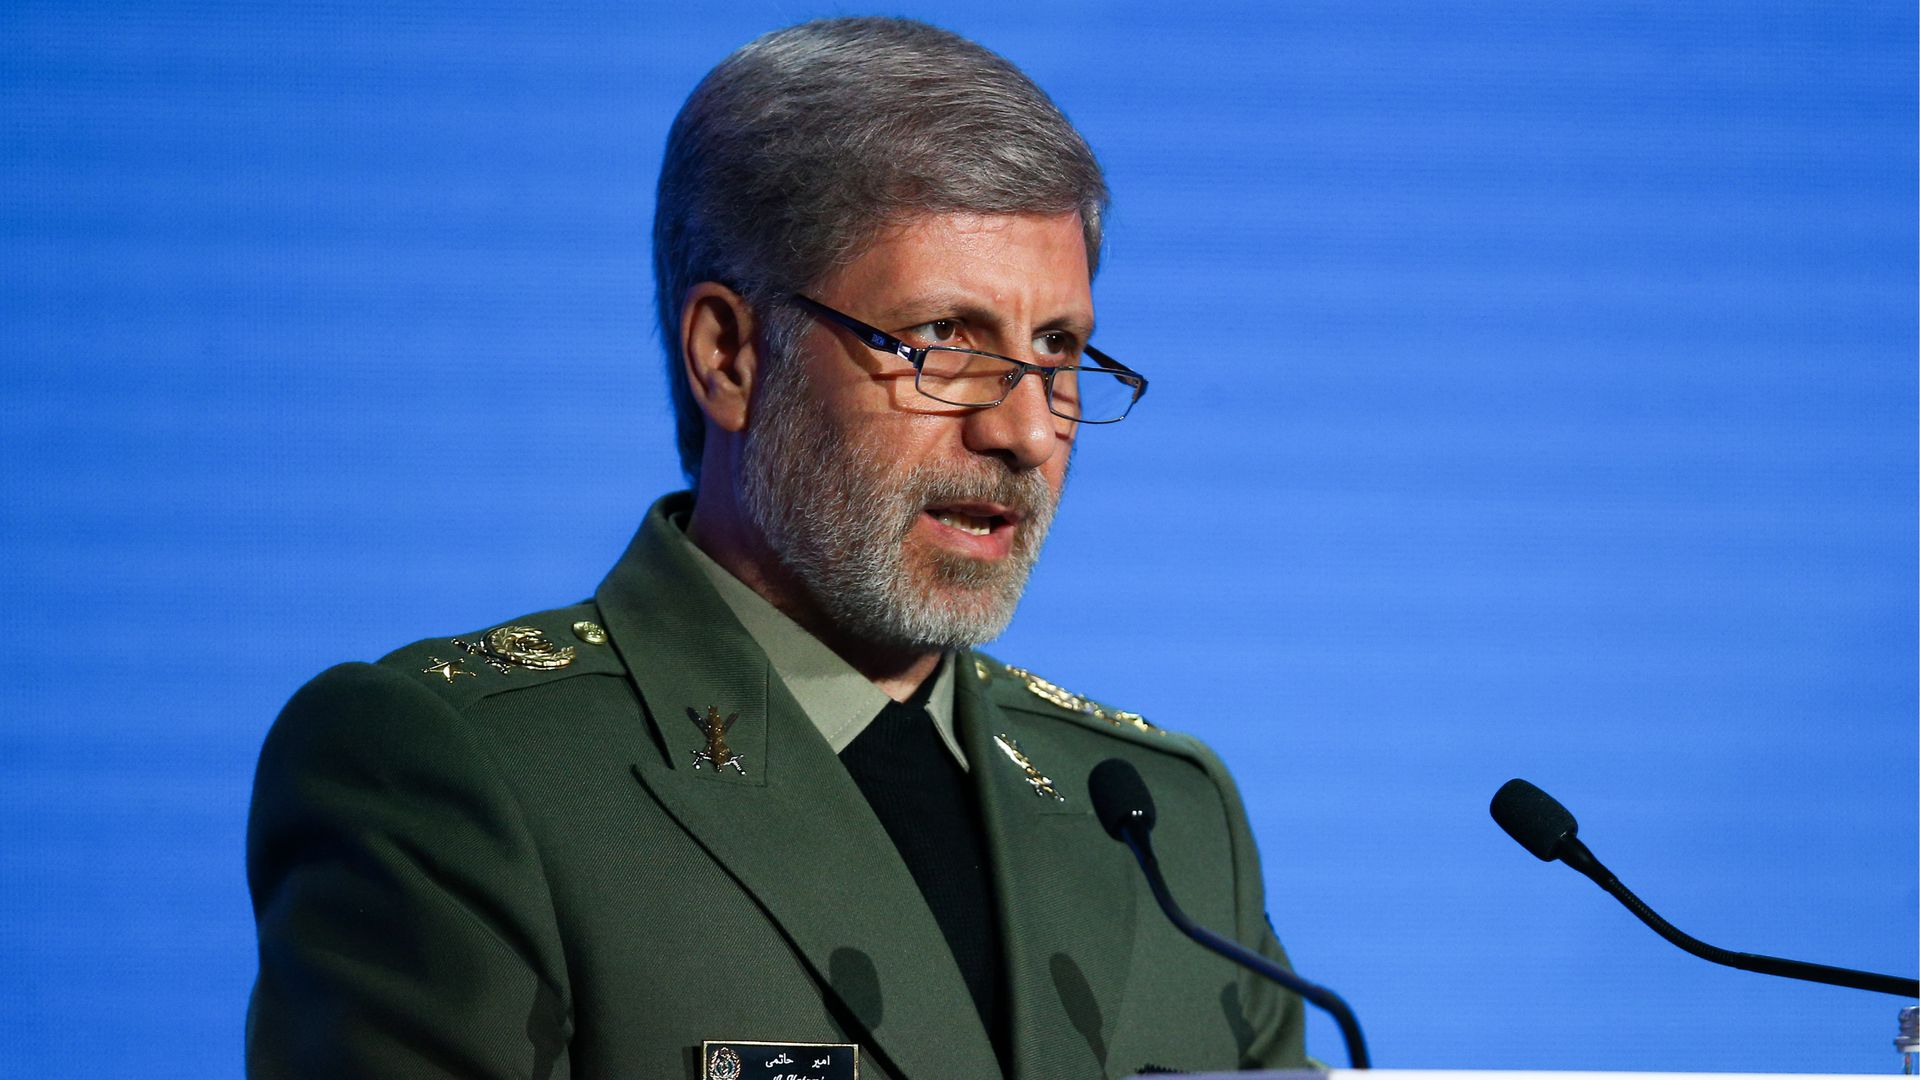 Iran's Defence Minister Brig Gen Amir Hatami addresses the 2018 Moscow Conference on International Security held at Radisson Royal Hotel.